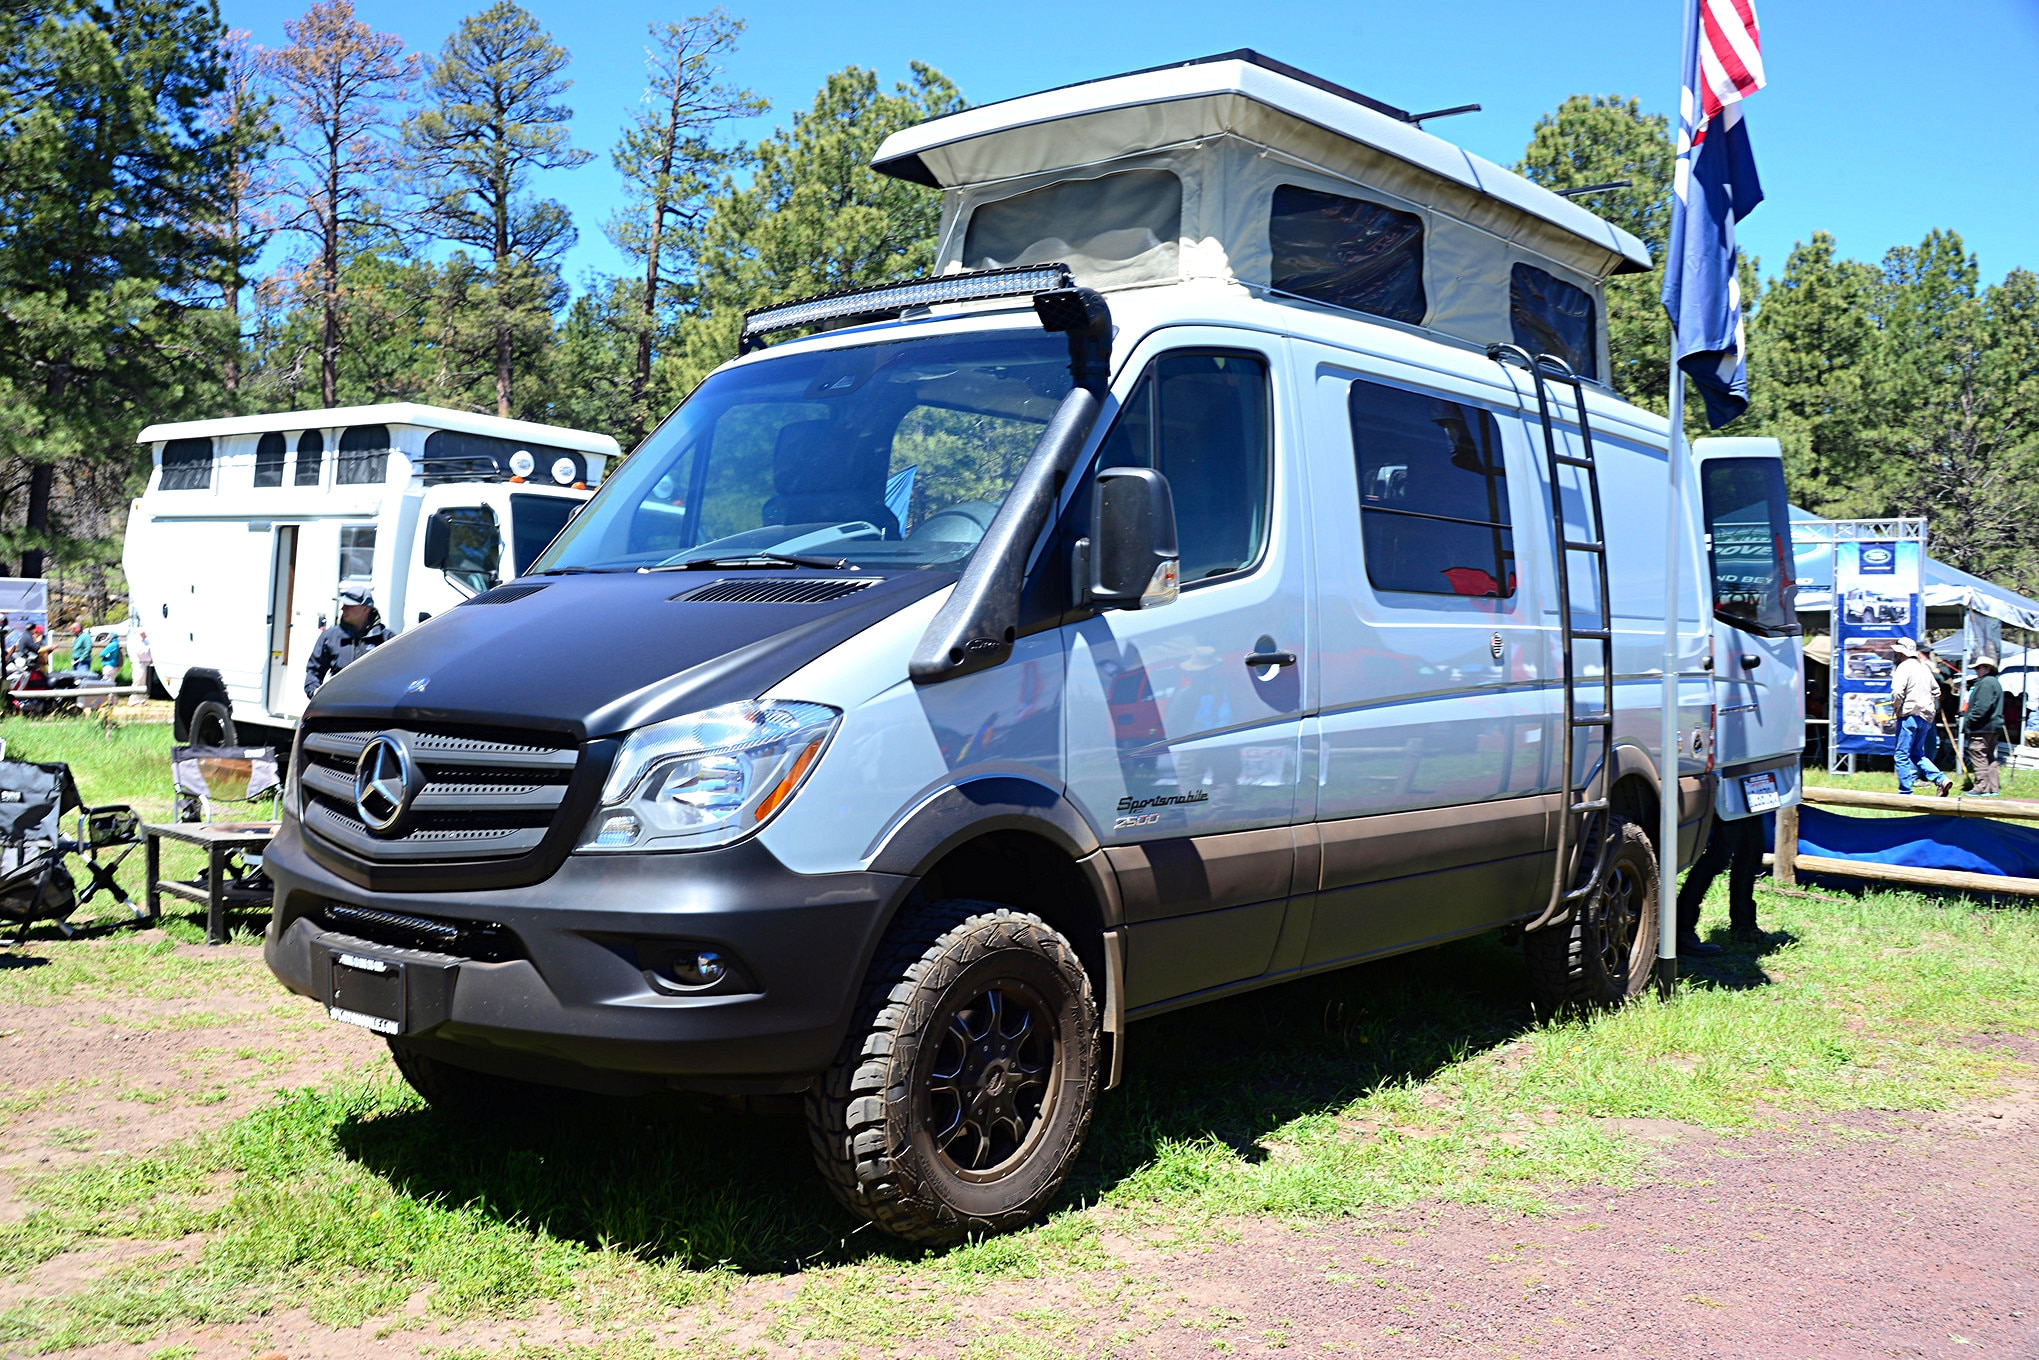 017 2016 Overland Expo 4x4 Vehicles Camping Flagstaff Mormon Lake Arizona Mercedes Sprinter Van Diesel Camper Photo 178316849